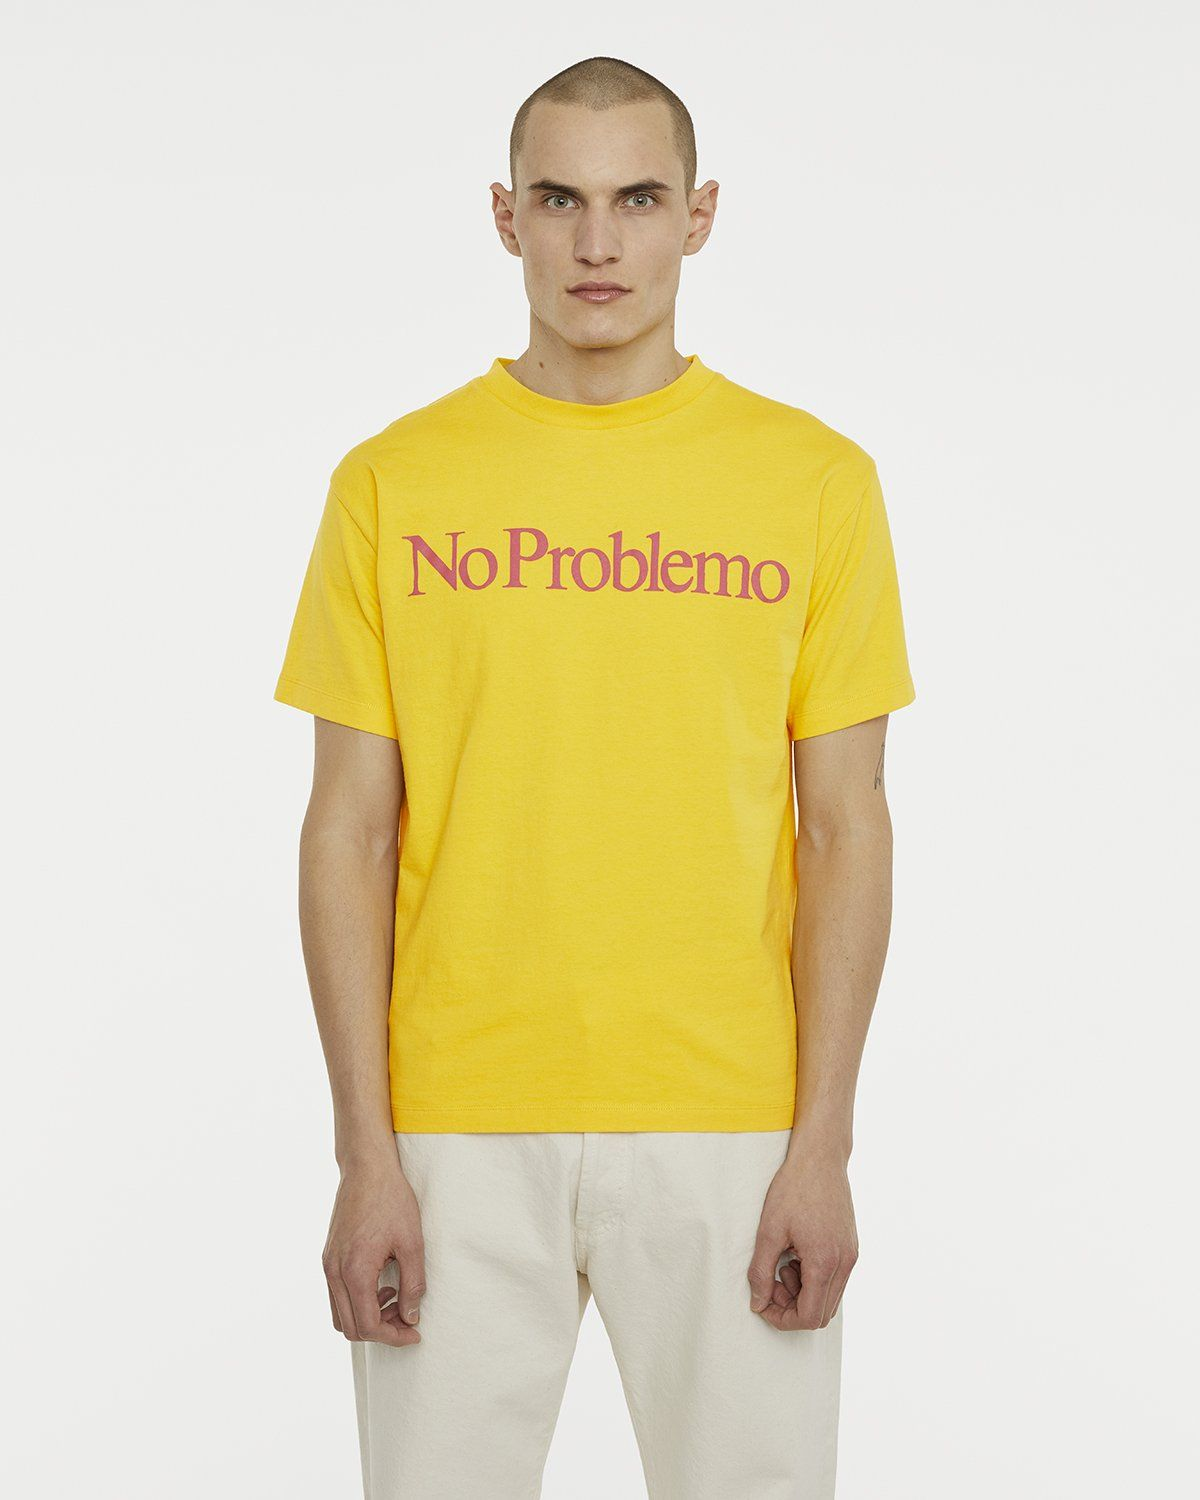 Aries - No Problemo Tee Yellow - Image 3